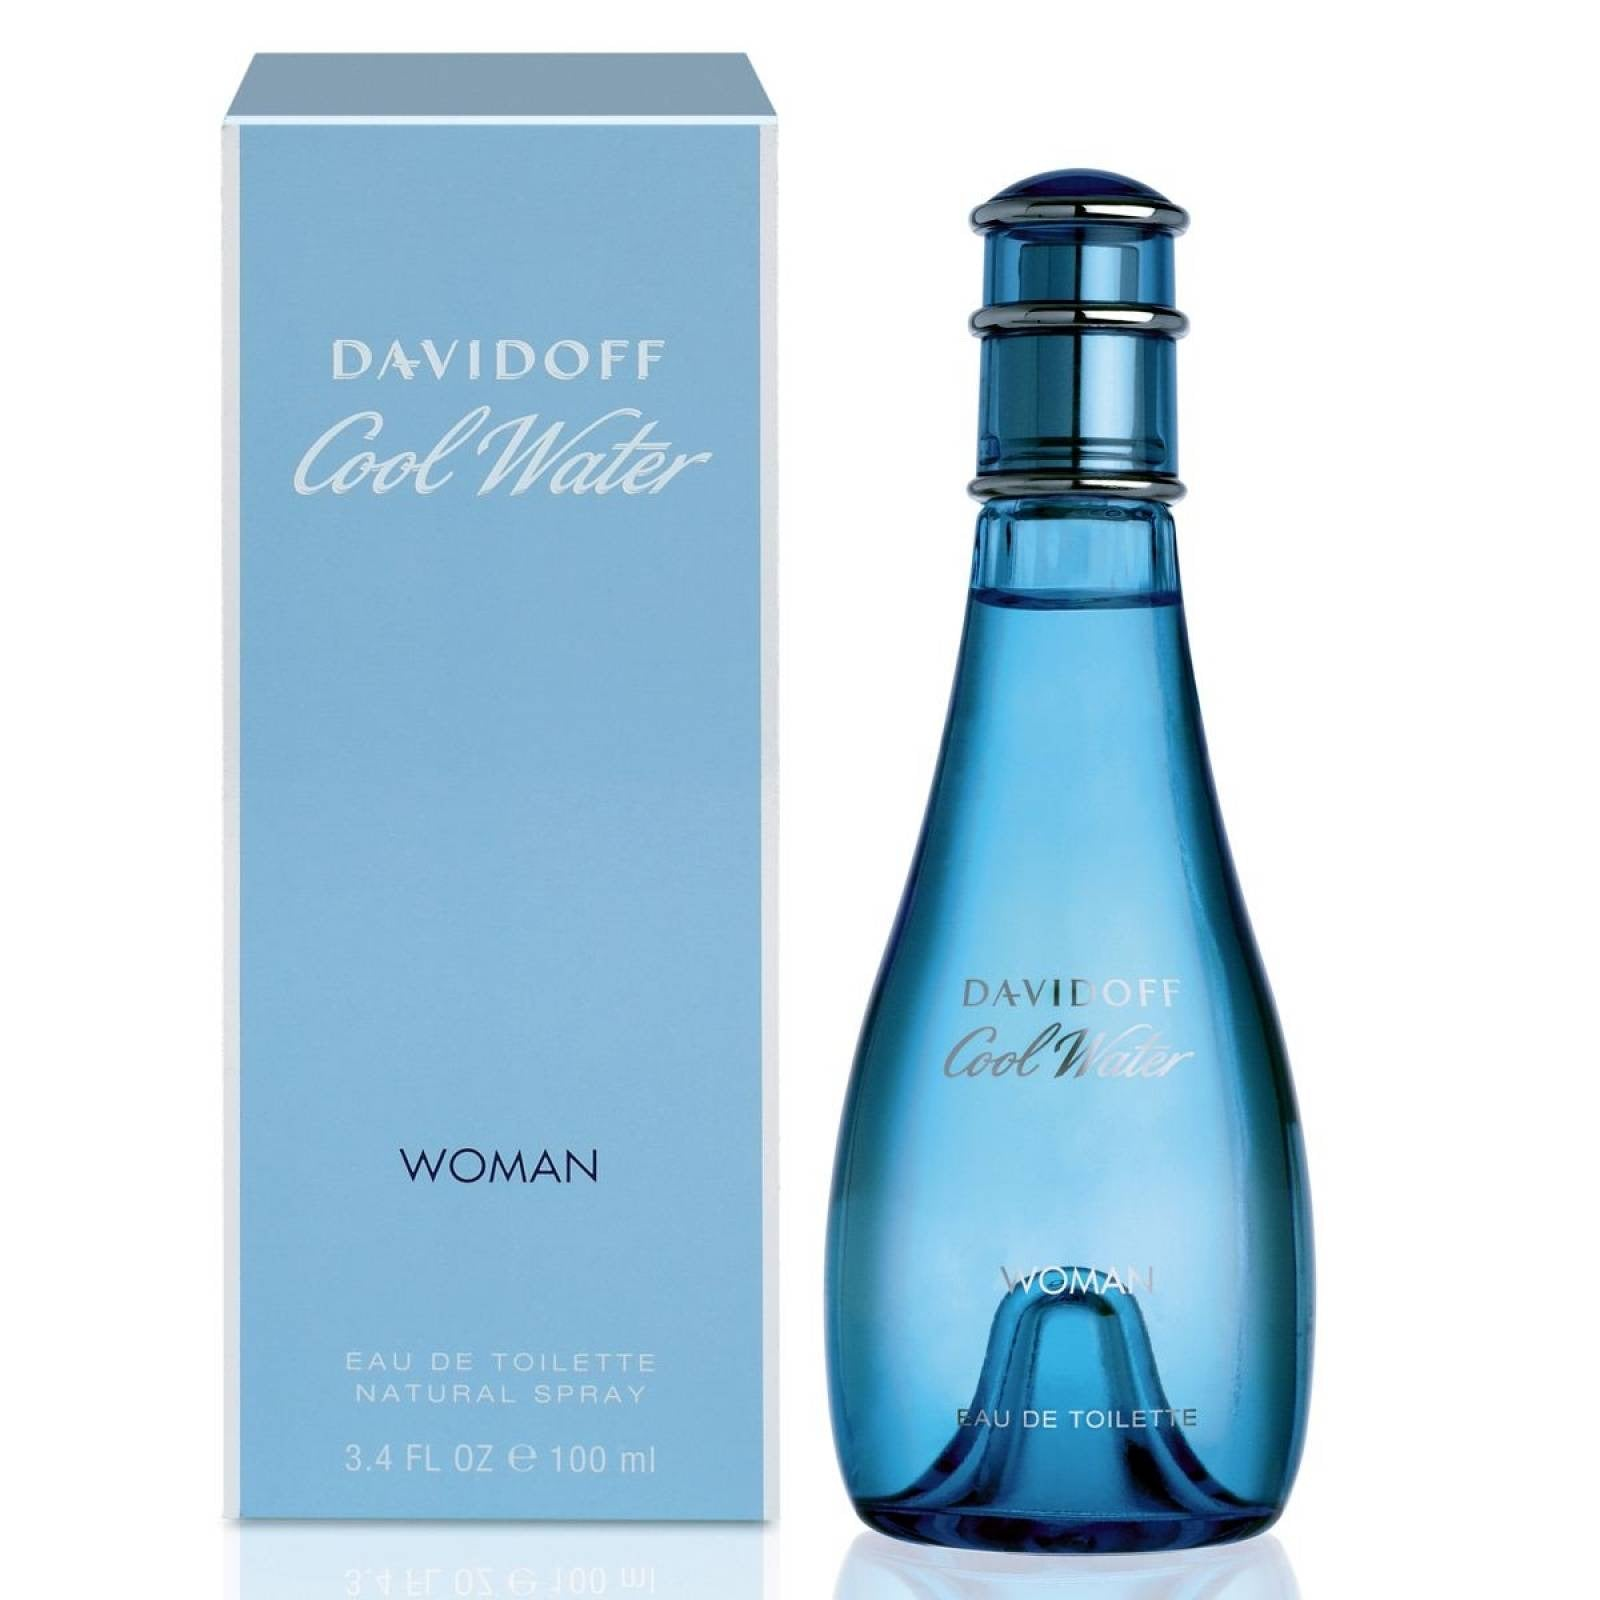 COOL WATER Davidoff Woman 3.4oz